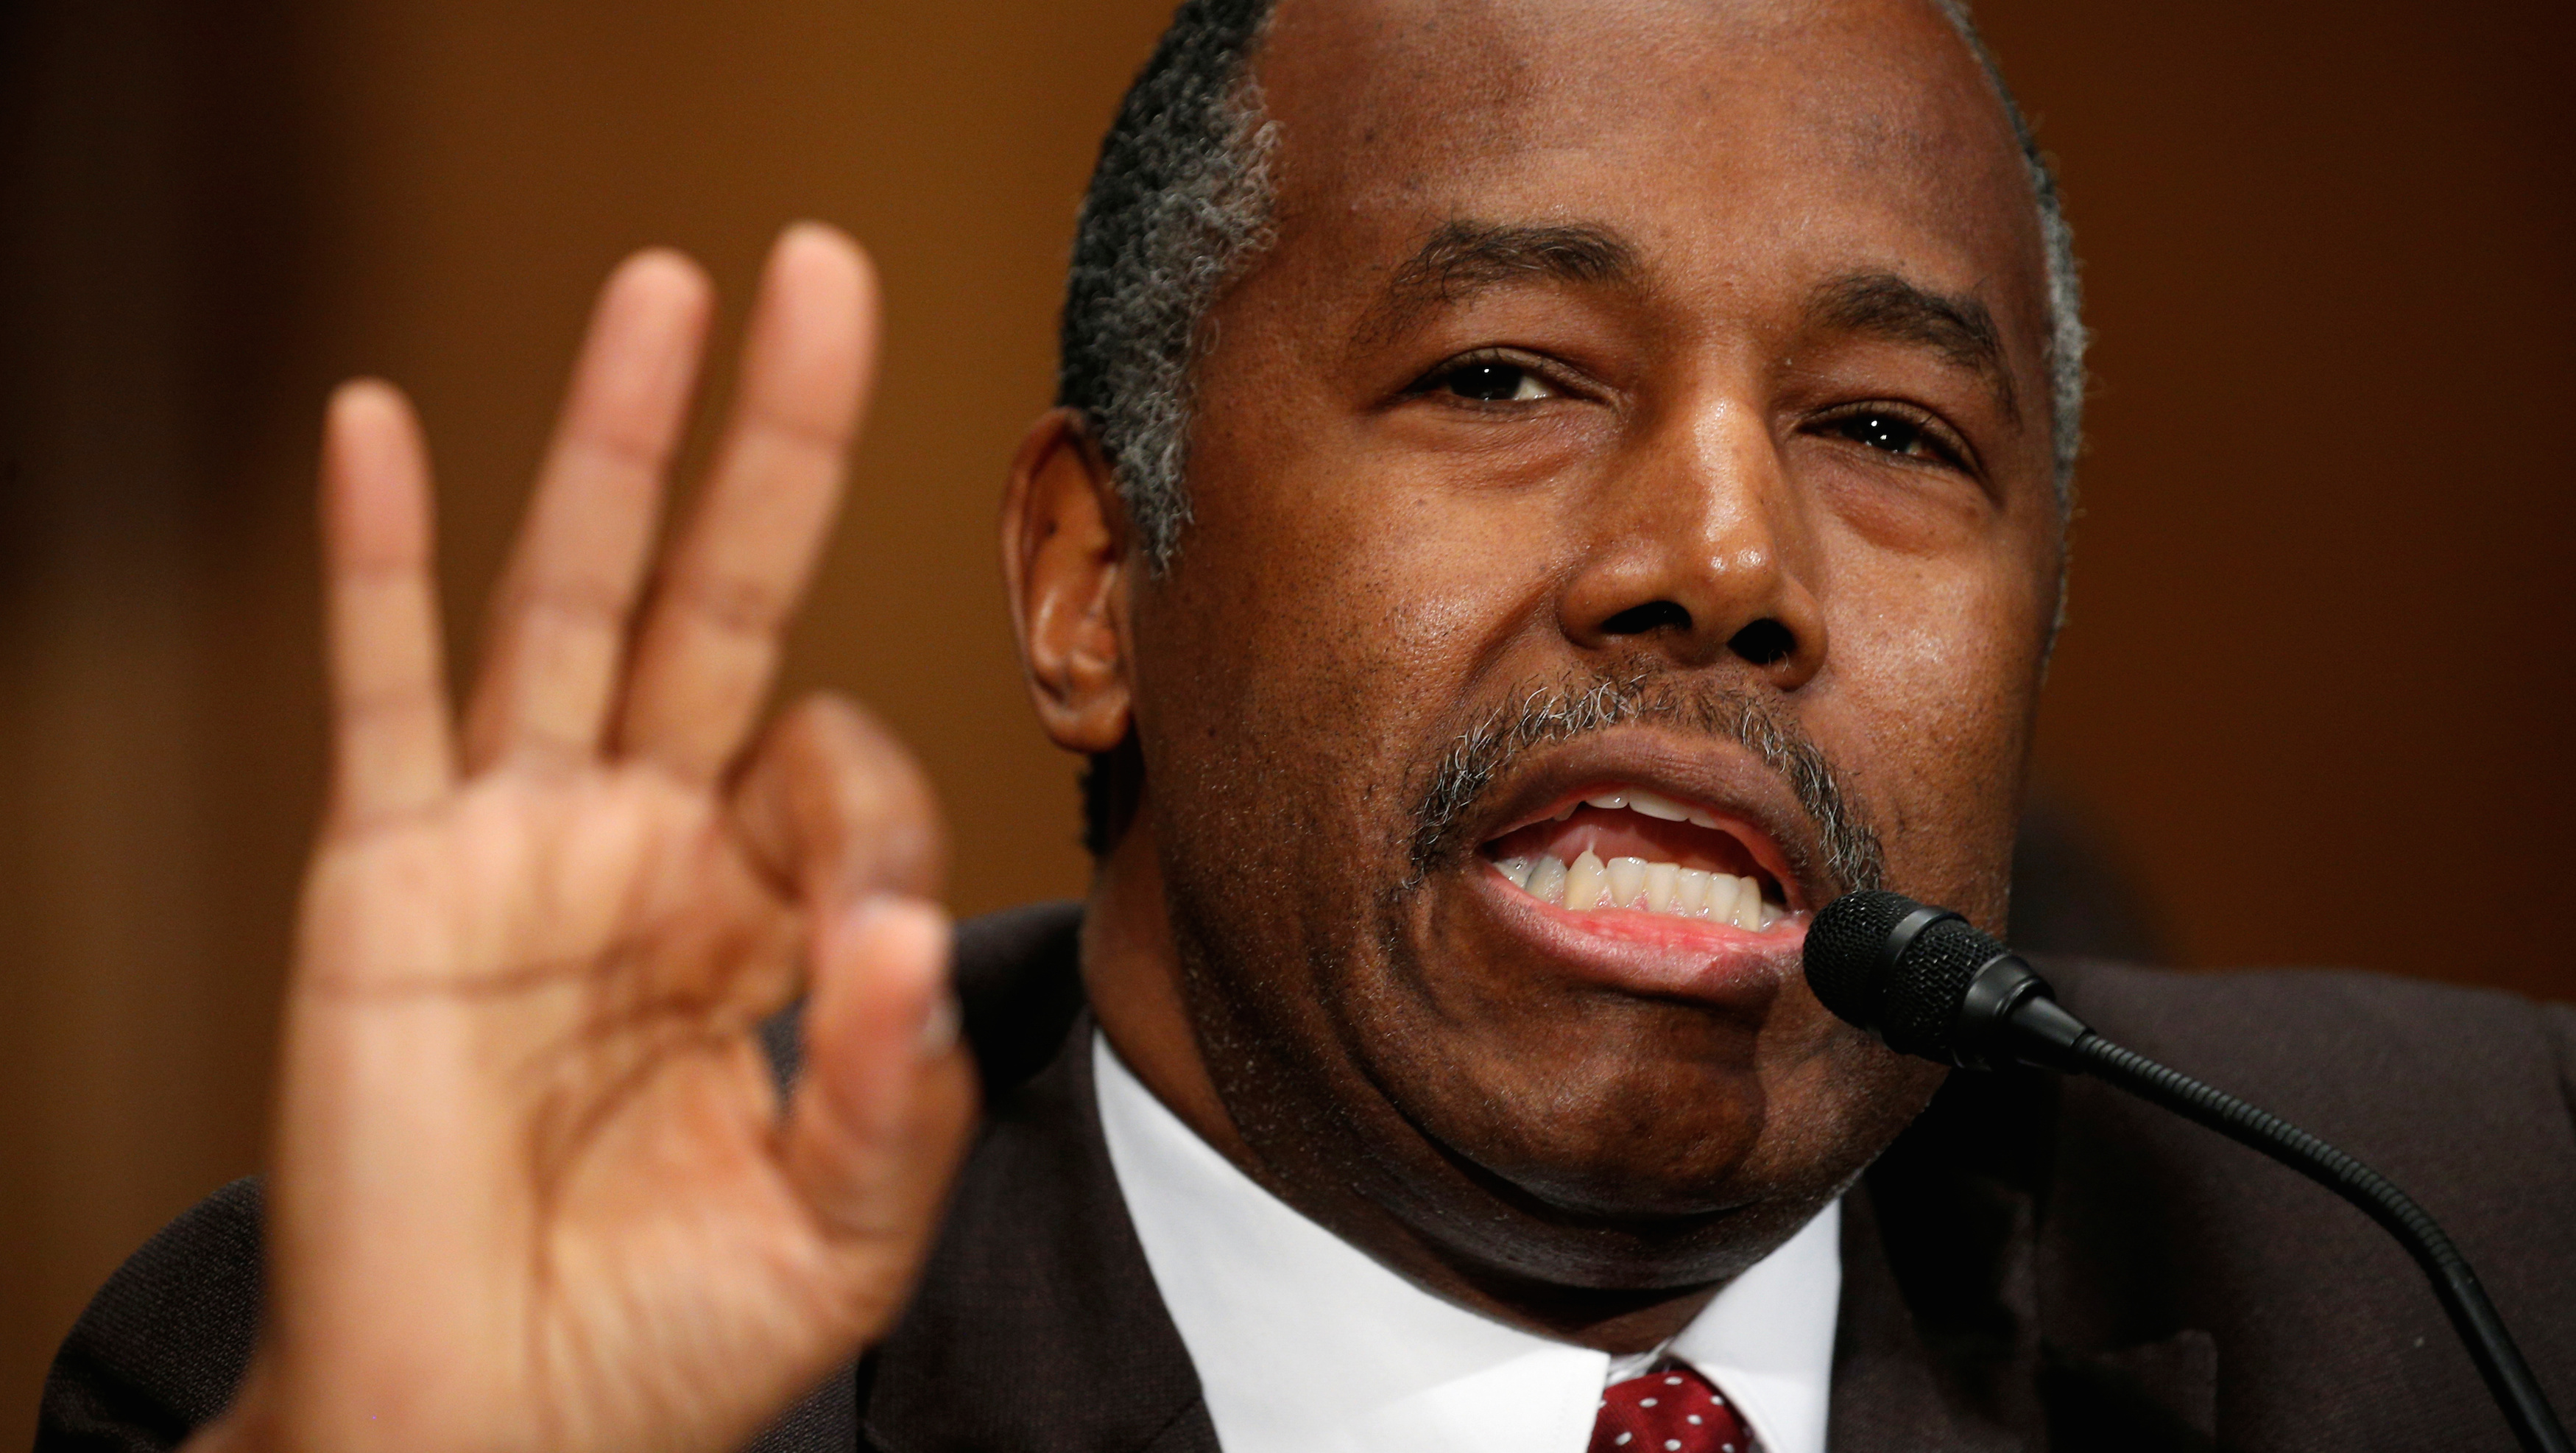 Dr. Ben Carson testifies before a Senate Banking, Housing and Urban Affairs Committee confirmation hearing on his nomination to be Secretary of the U.S. Department of Housing and Urban Development on Capitol Hill in Washington, U.S.  January 12, 2017.